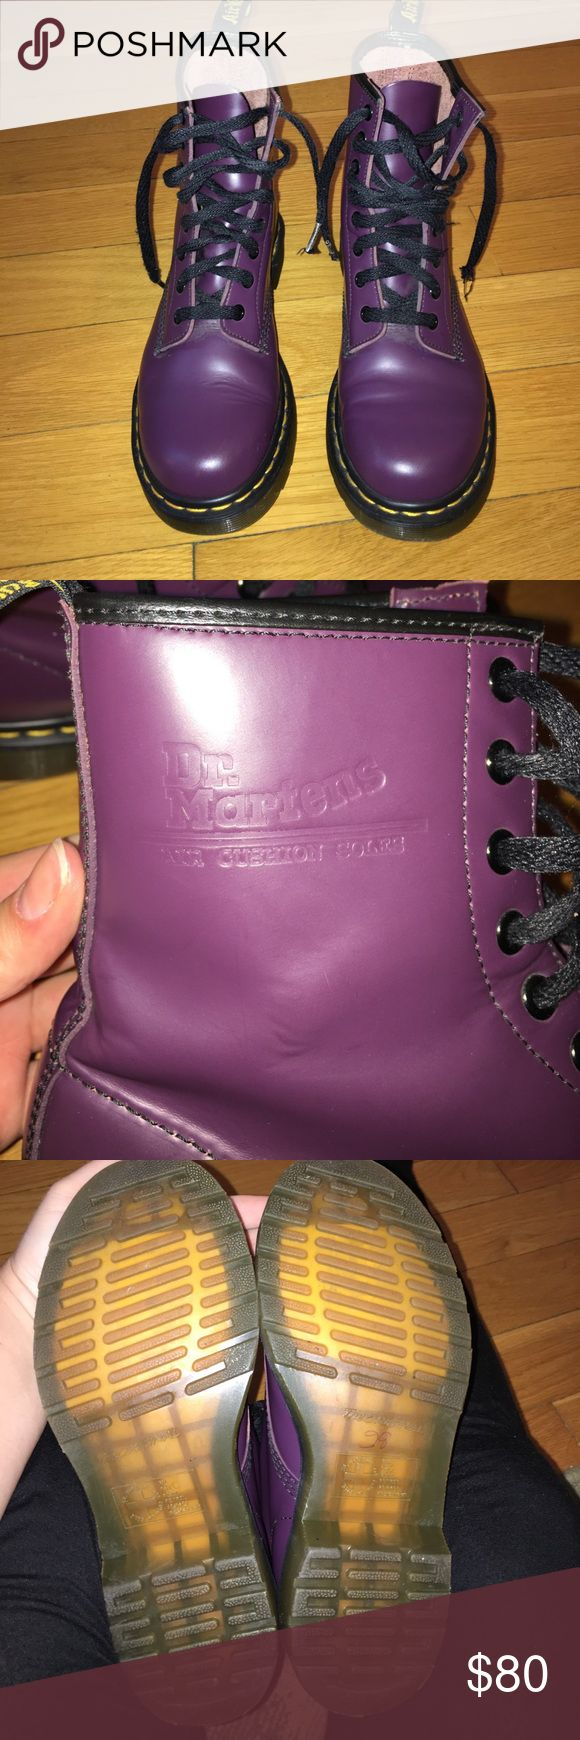 Purple Doc Martens Purple Doc Martens!! Original style- airwear! Amazing condition- shows almost no signs of wear. No scuffs at all, the soles are in excellent condition, yellow stitching around the shoe in pristine condition. Only thing these shoes need is a new pair of shoe laces! Color looks like a darker eggplant color. Such a unique color and hard to find. Size 7 US, size 38 EU. These retail new for $140! Dr. Martens Shoes Combat & Moto Boots